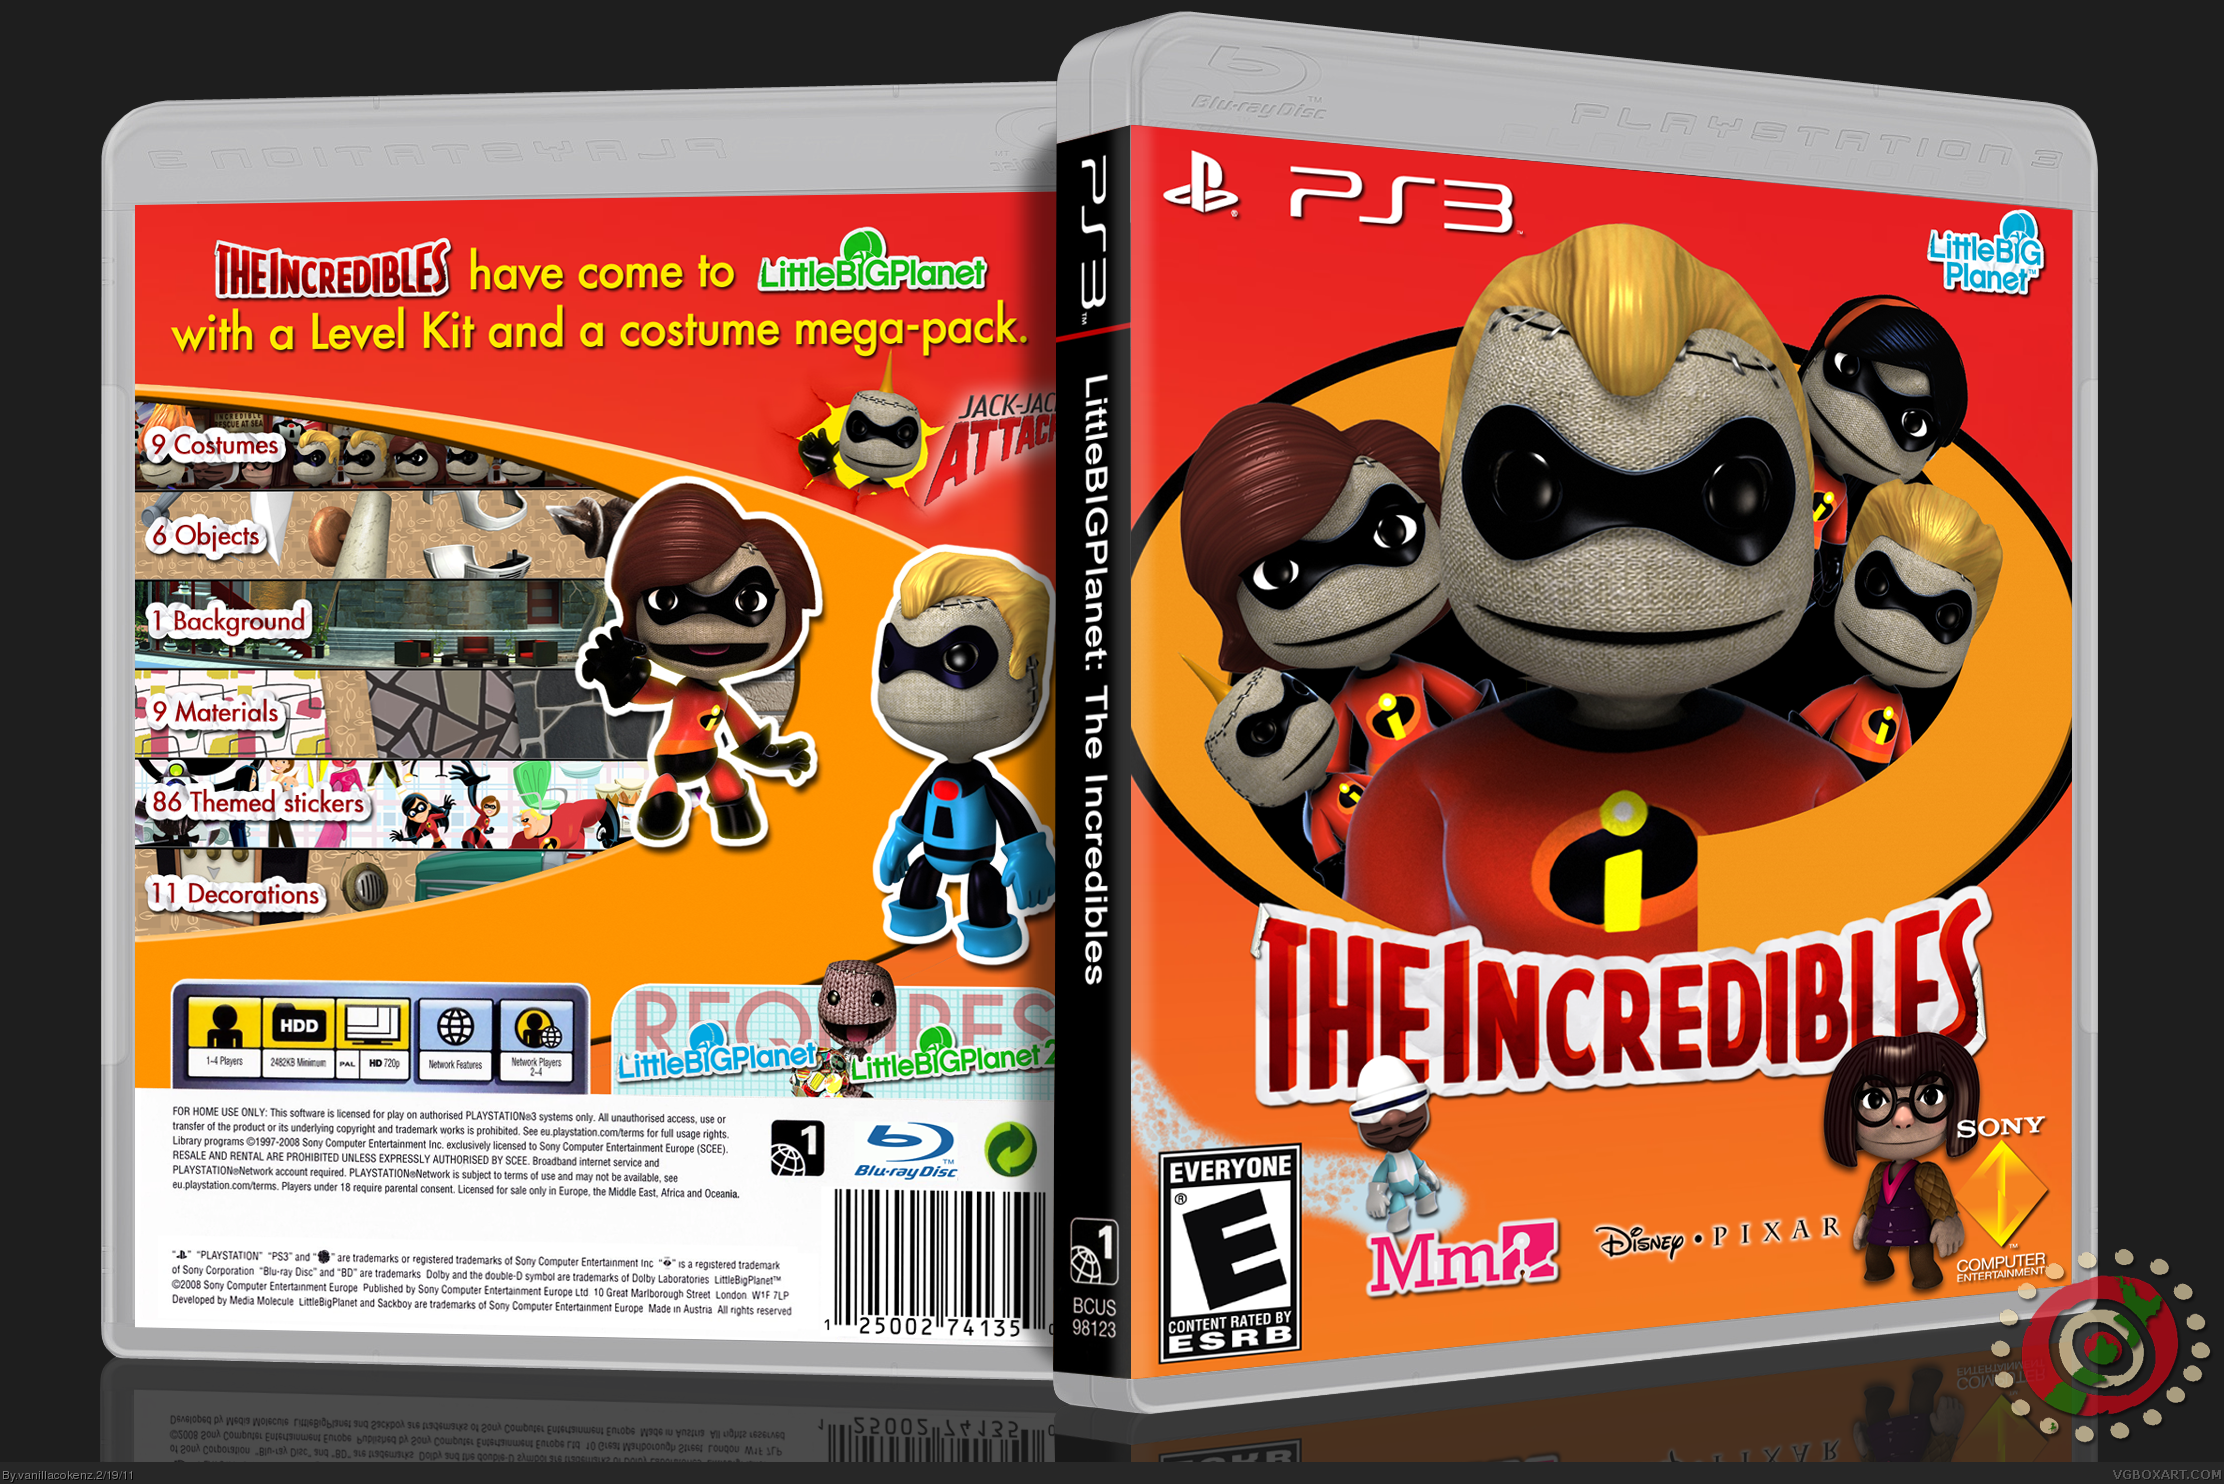 LittleBIGPlanet: The Incredibles box cover